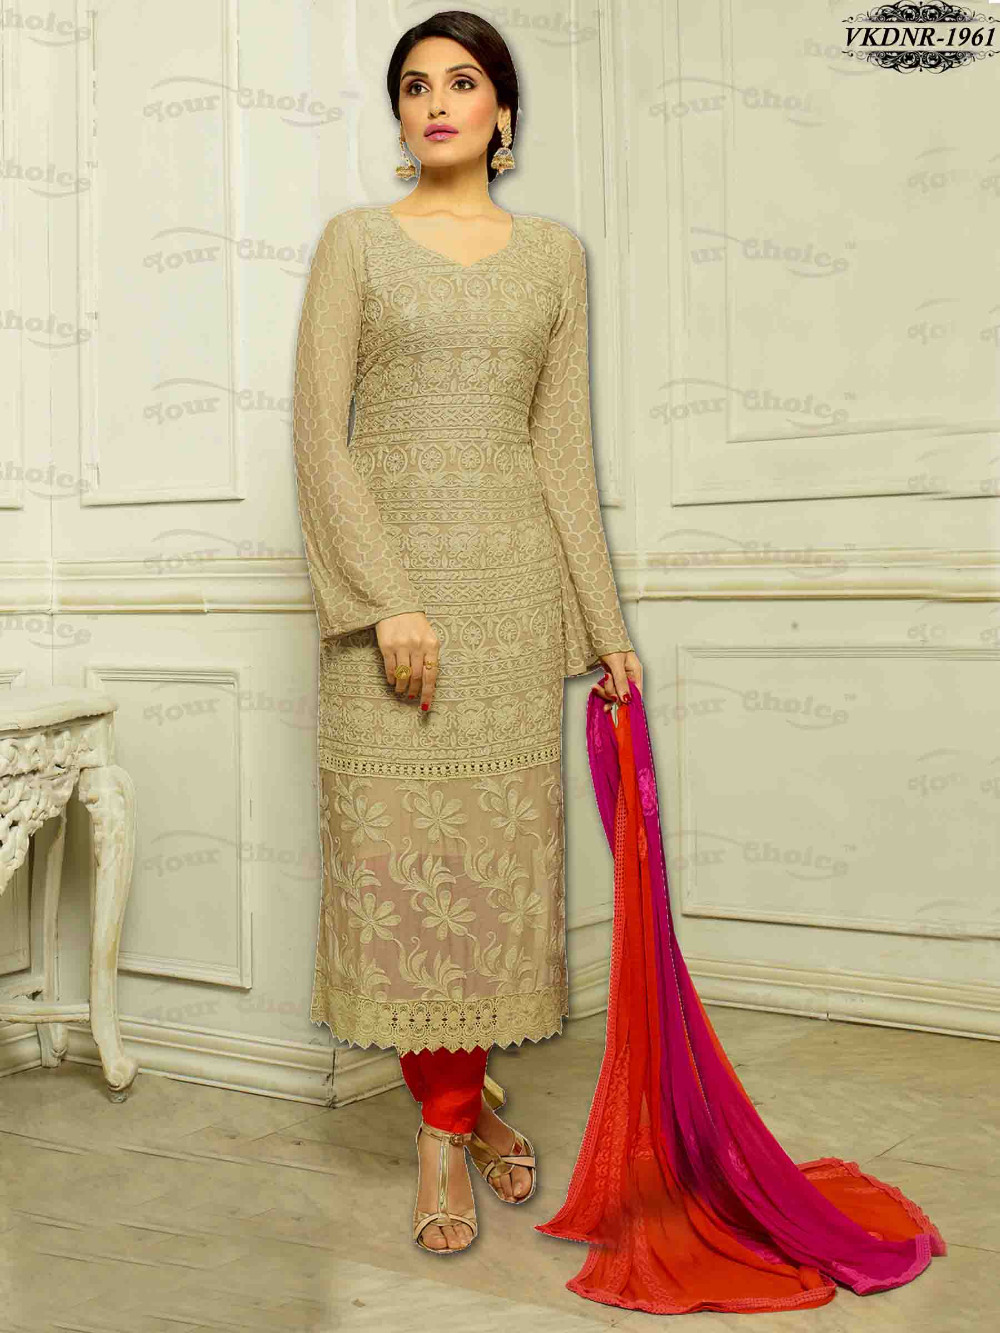 Cheap Price Pure Chiffon Karachi Work Dress Materials | Best ...